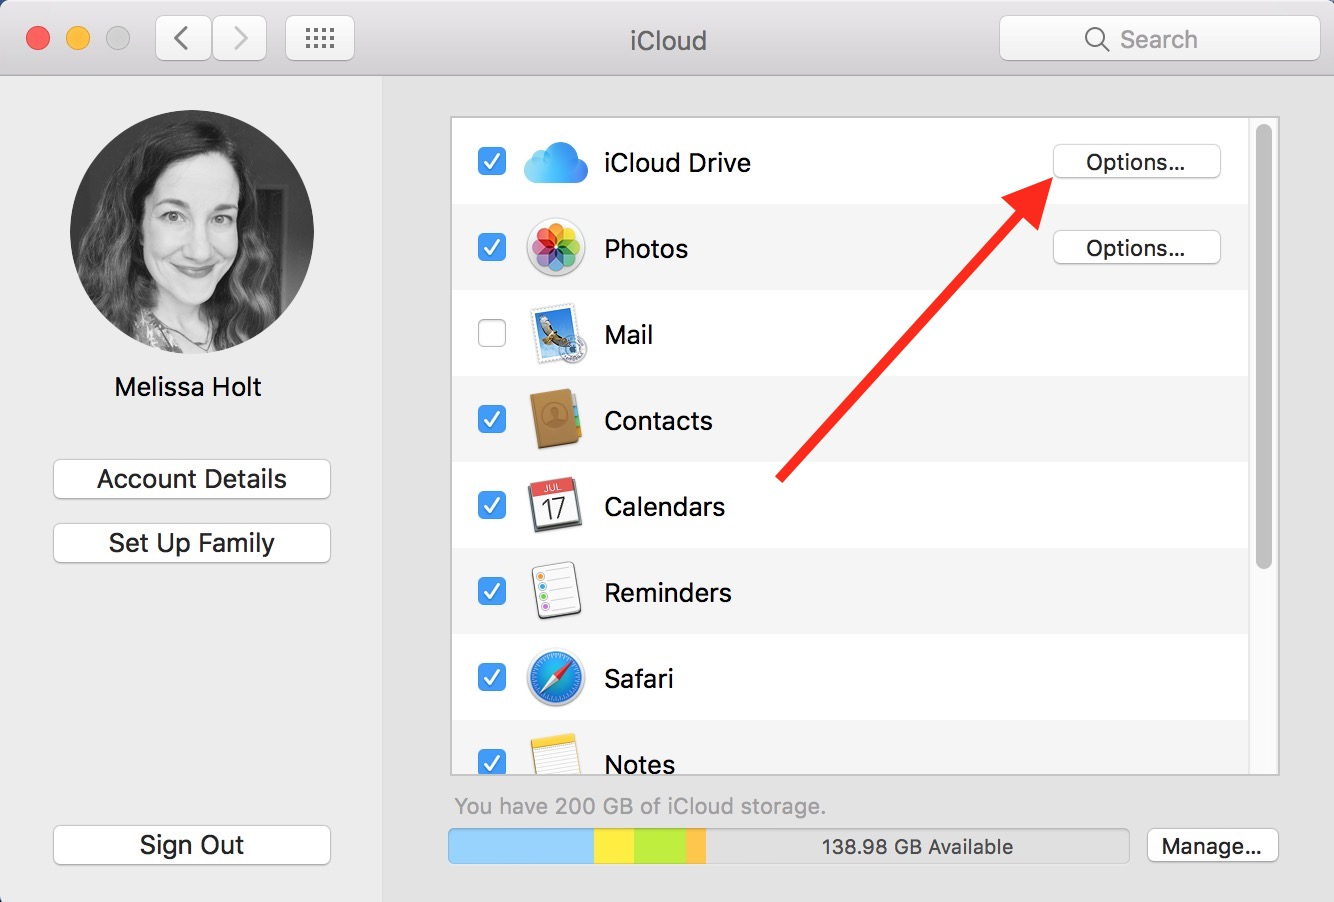 macOS iCloud Drive Options Button lets you set what files sync to the cloud